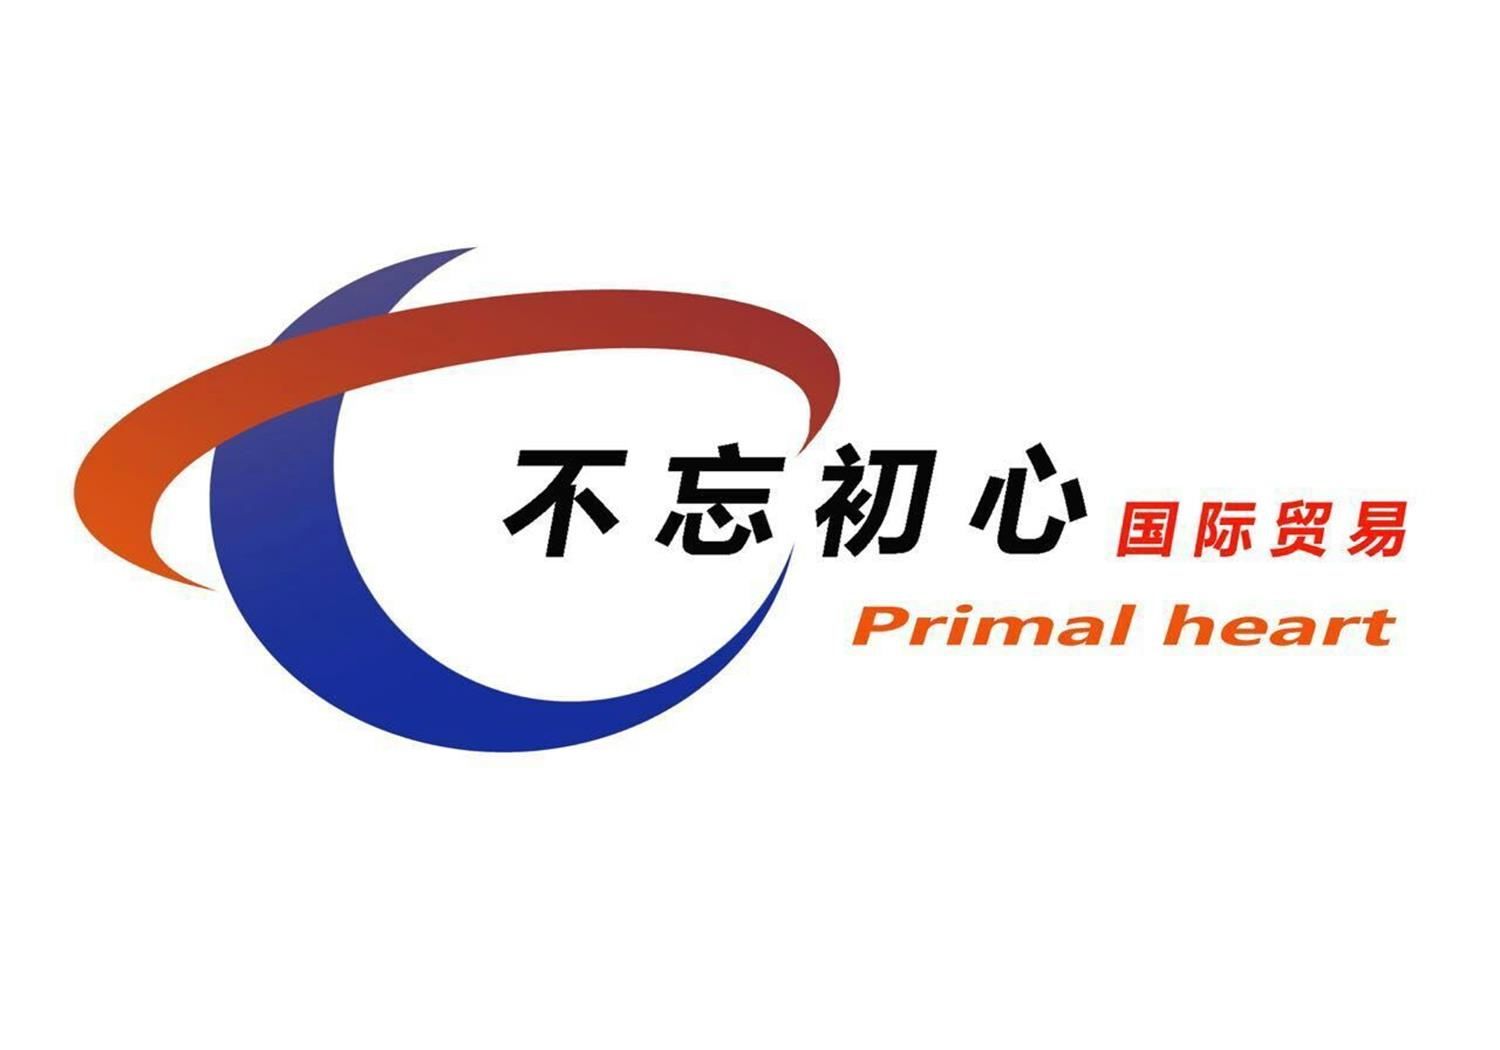 primal heart internationl trade co.,ltd logo